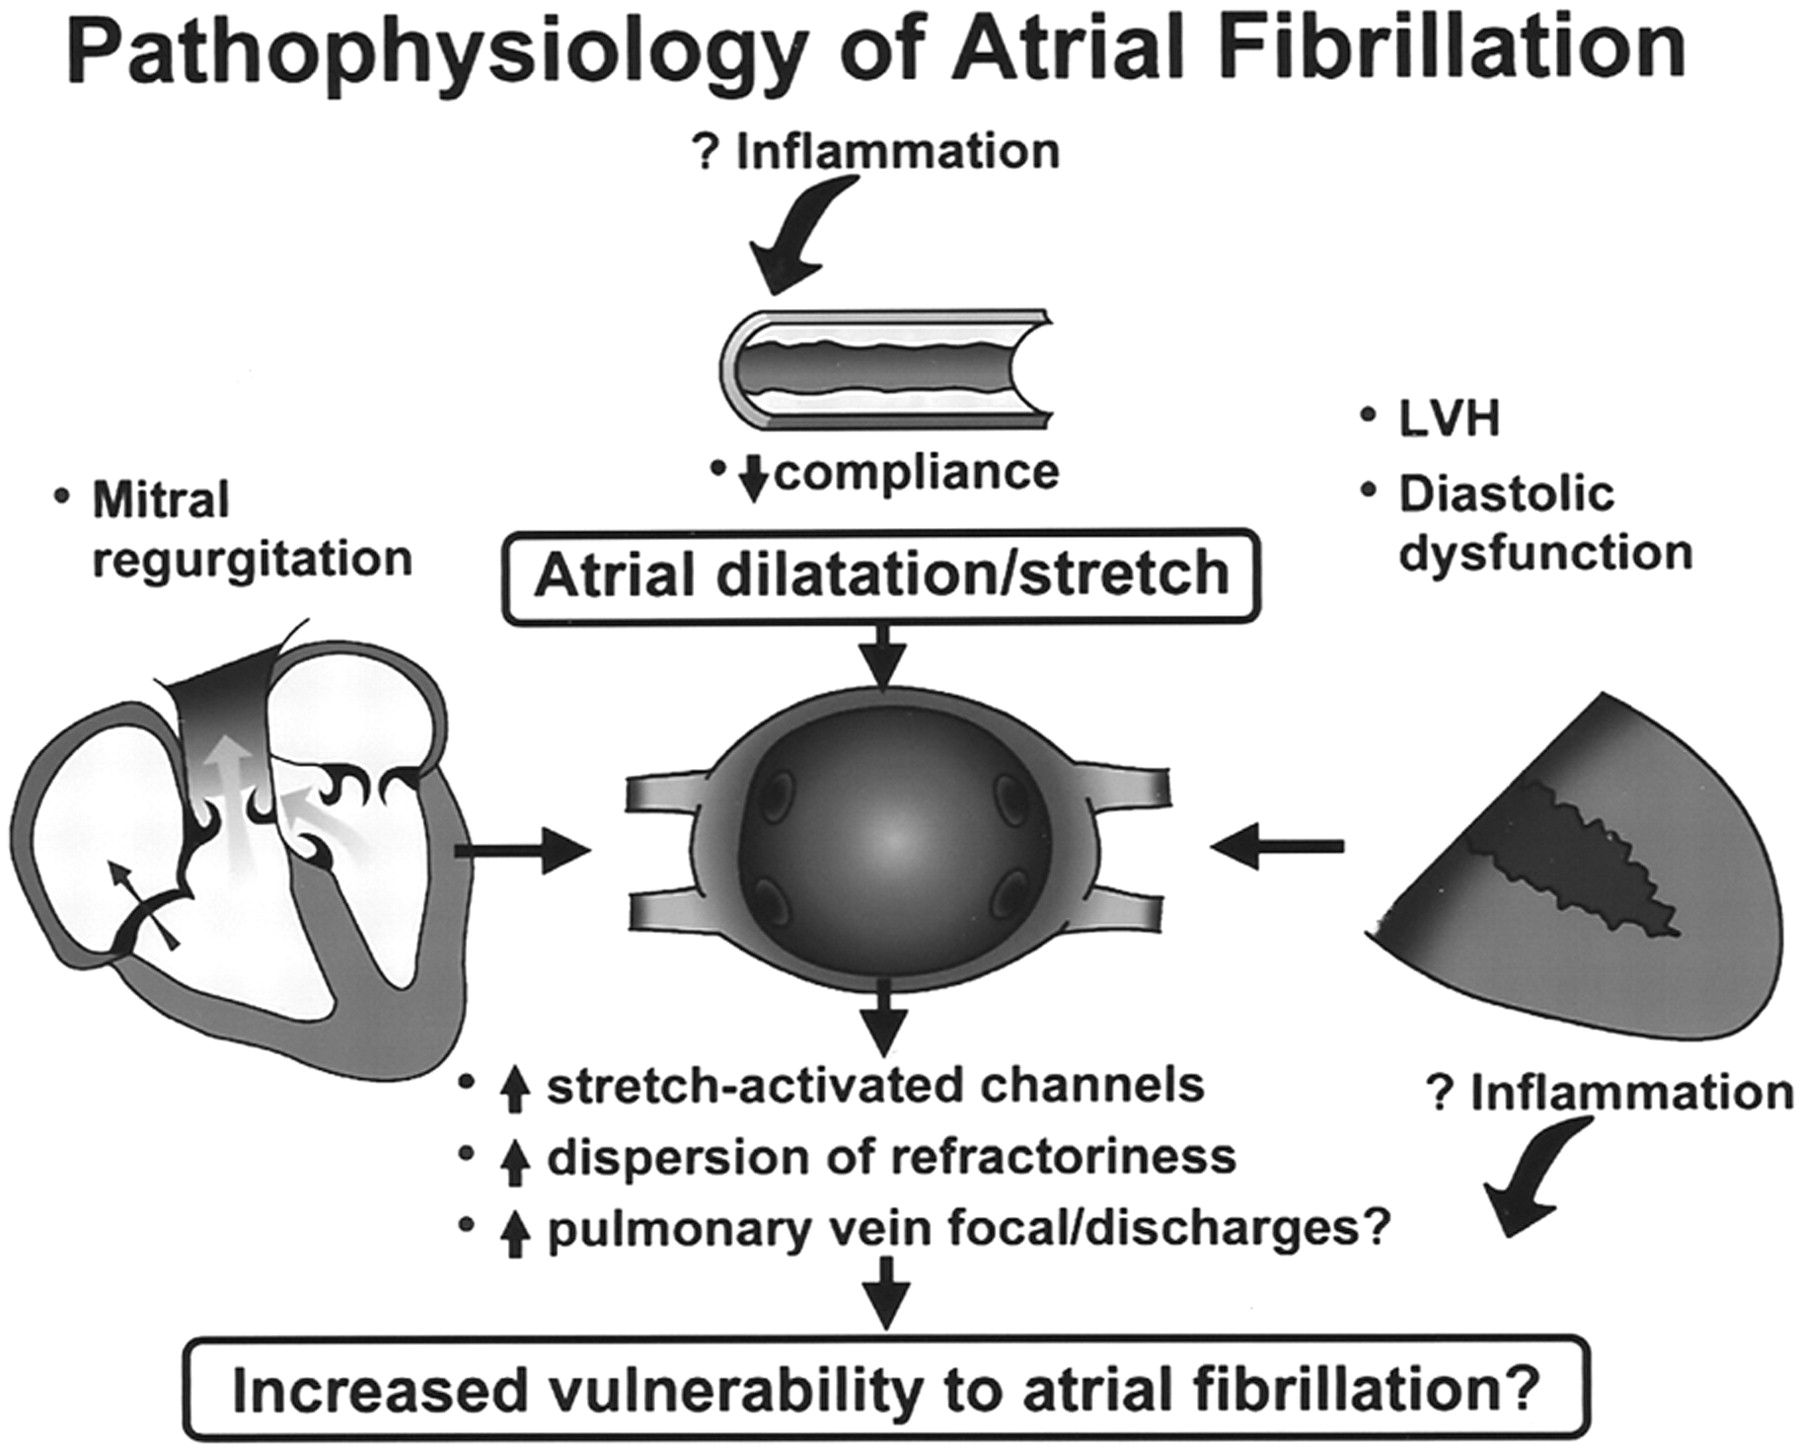 patho of a fib | The changing epidemiology of non-valvular atrial fibrillation: the ...